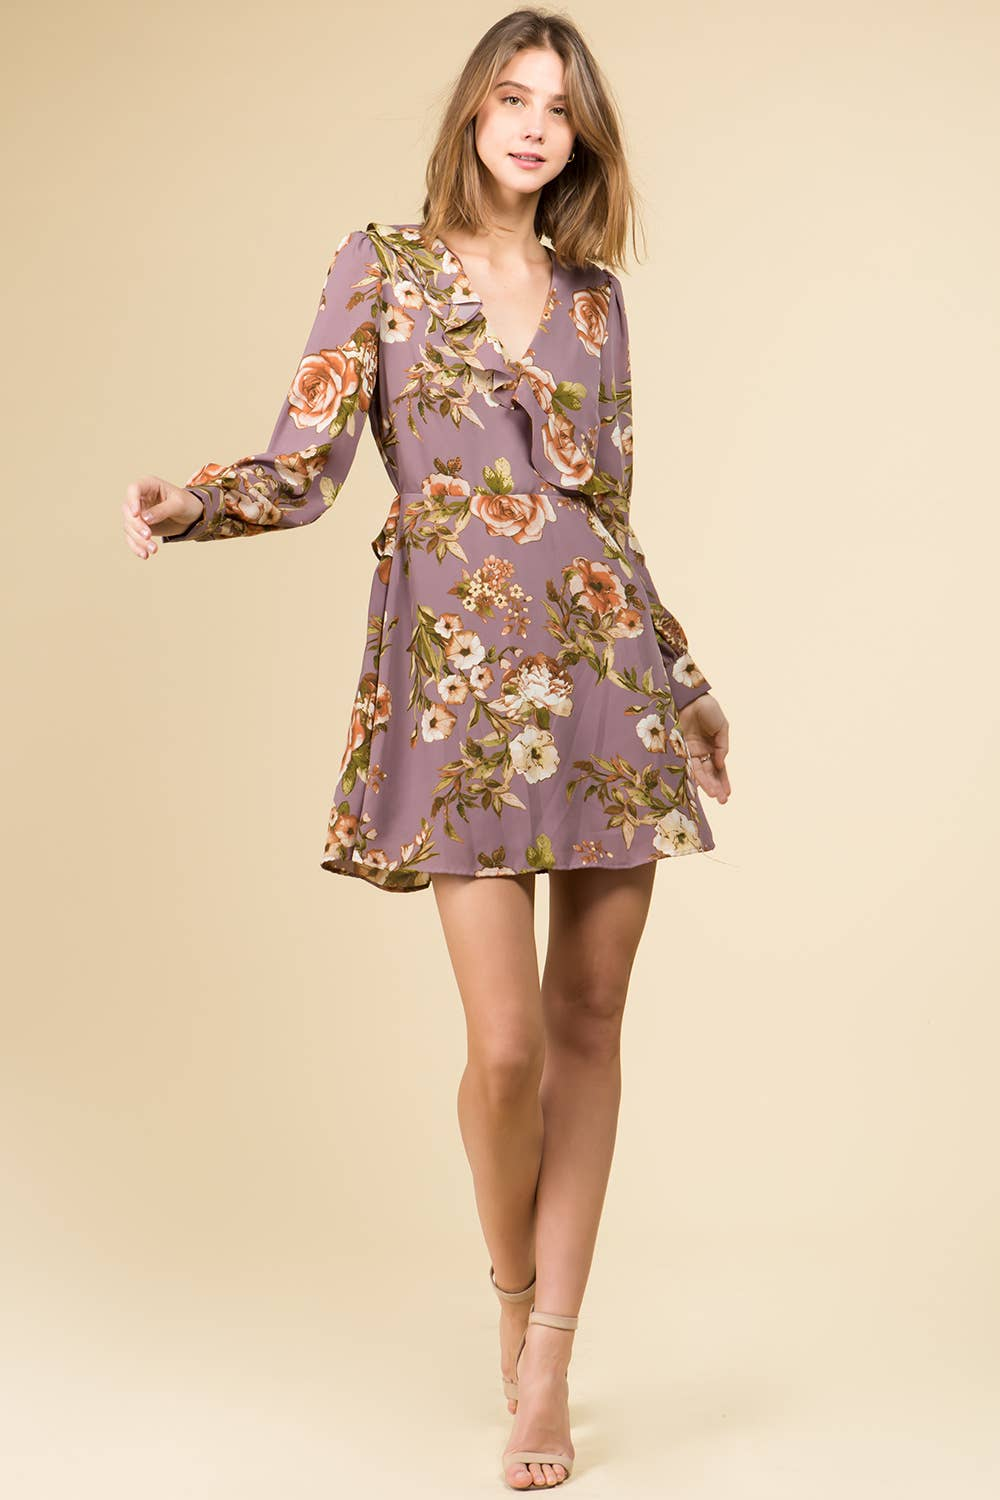 Strike a Rose | Dusty Lilac Floral Mini Dress